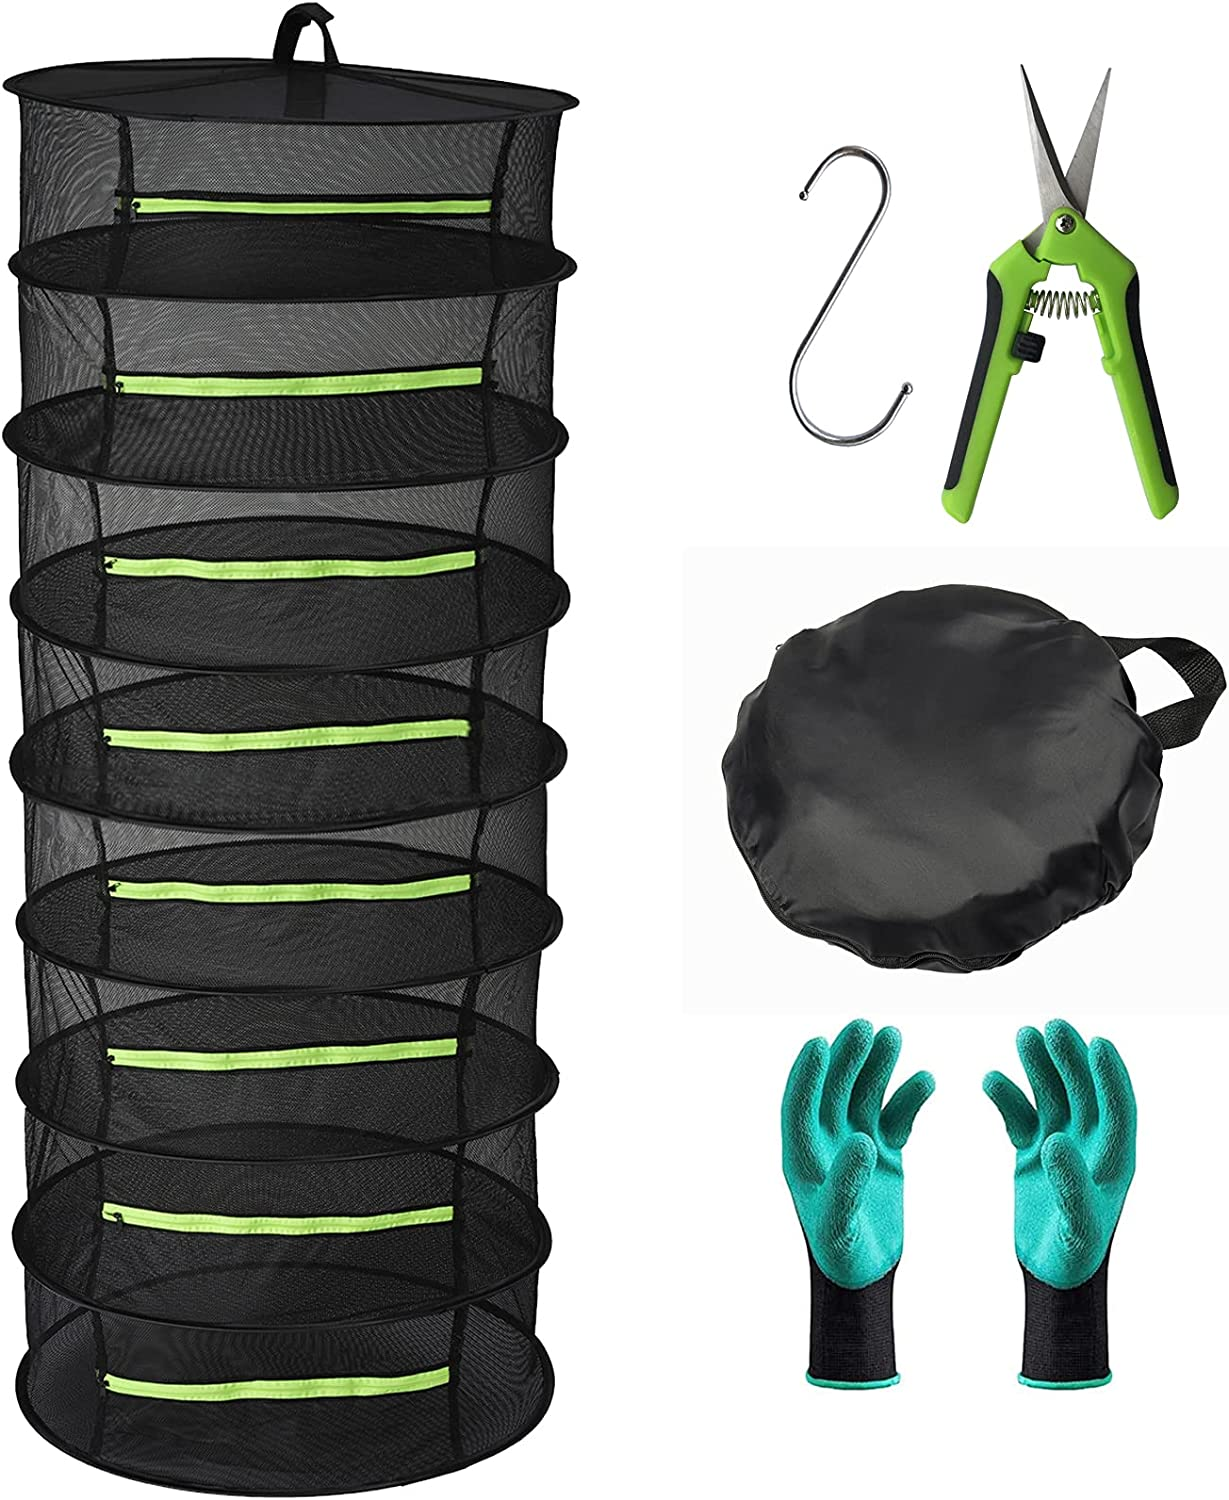 Herb Drying Rack 8 Layer Collapsible Mesh Hanging Drying Net with Zipper, Seropy 2ft Drying Rack with Garden Gloves, Pruning Scissors, Hook, for Drying Seeds, Herb, Bud, Hydroponic Plants